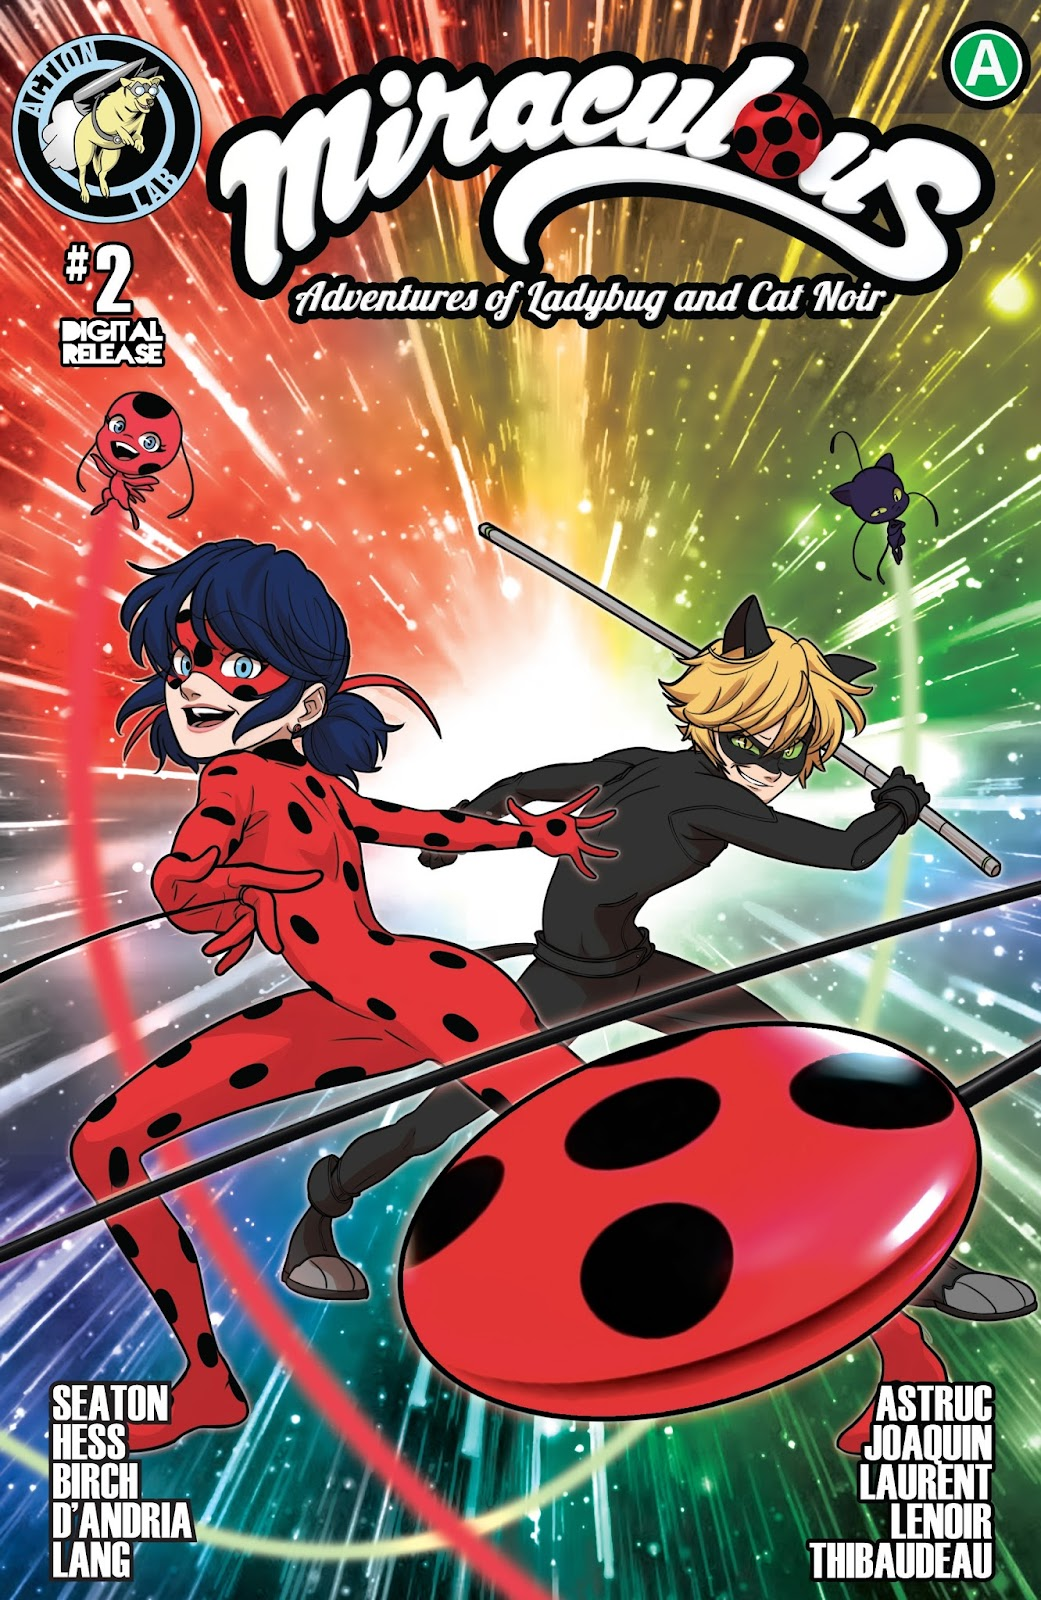 Miraculous: Adventures of Ladybug and Cat Noir issue 2 - Page 1